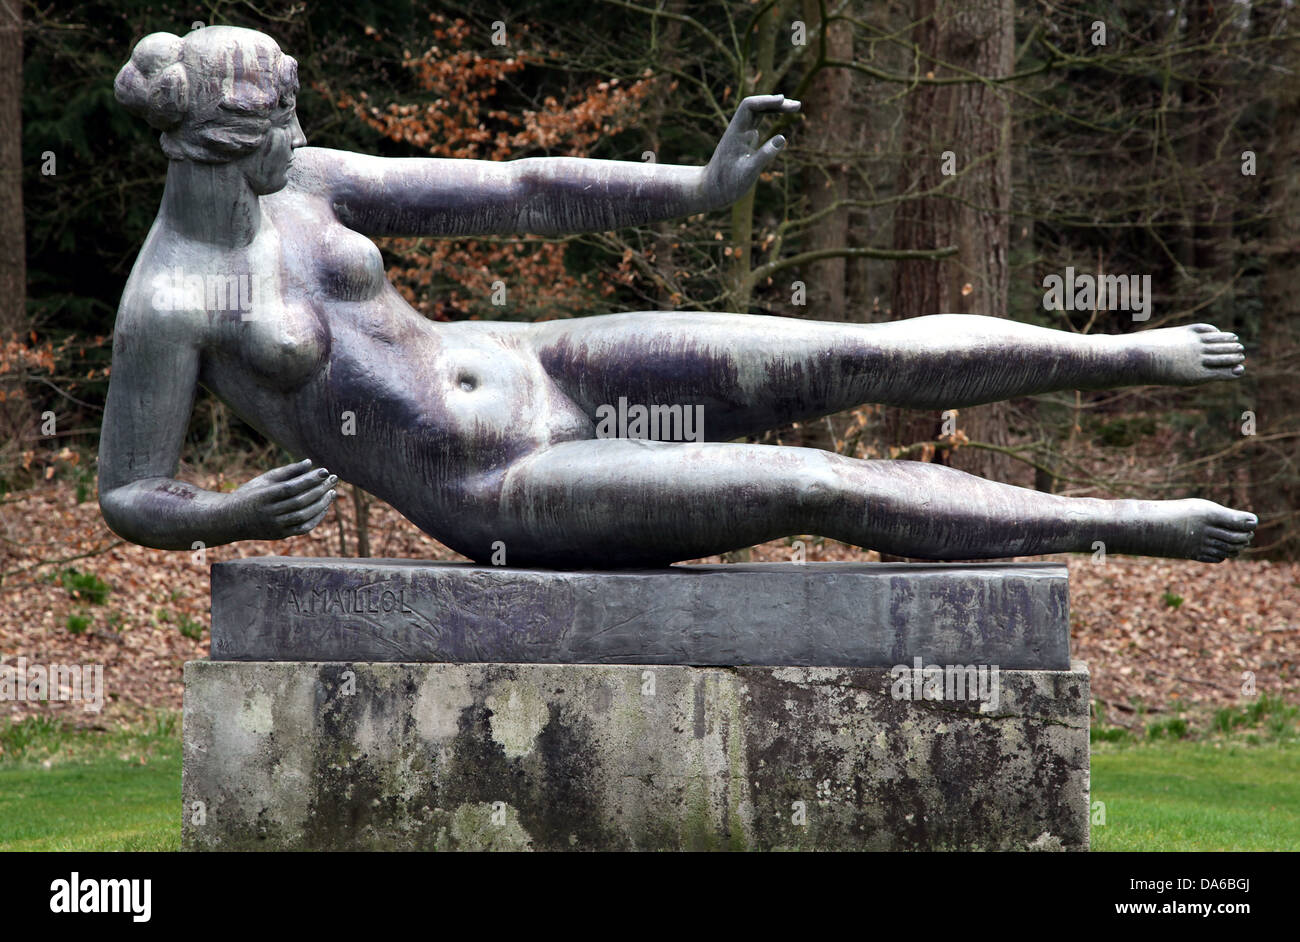 L'Air.Air.a bronze sculpture by Aristide Maillol.1938.located at the Kröller-Müller Museum. - Stock Image